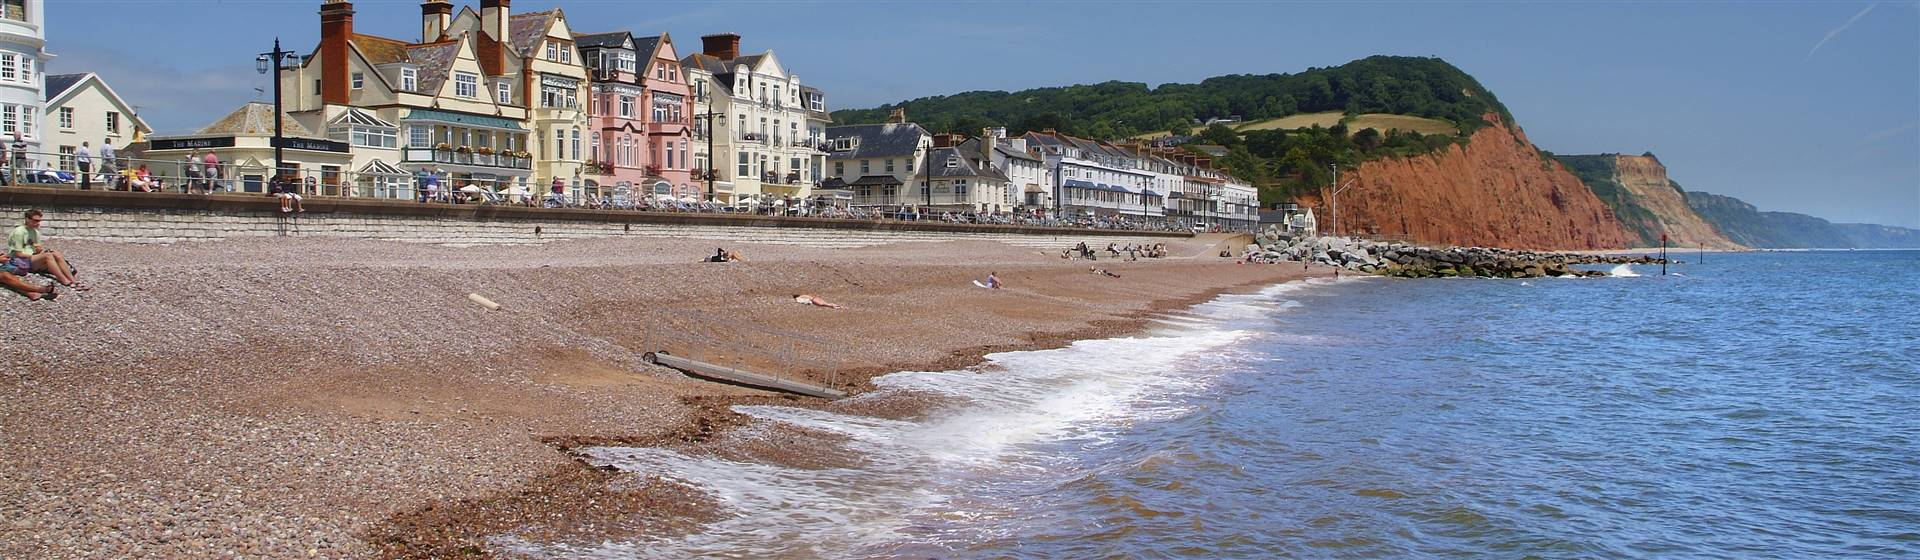 Stunning Splendour of Sidmouth